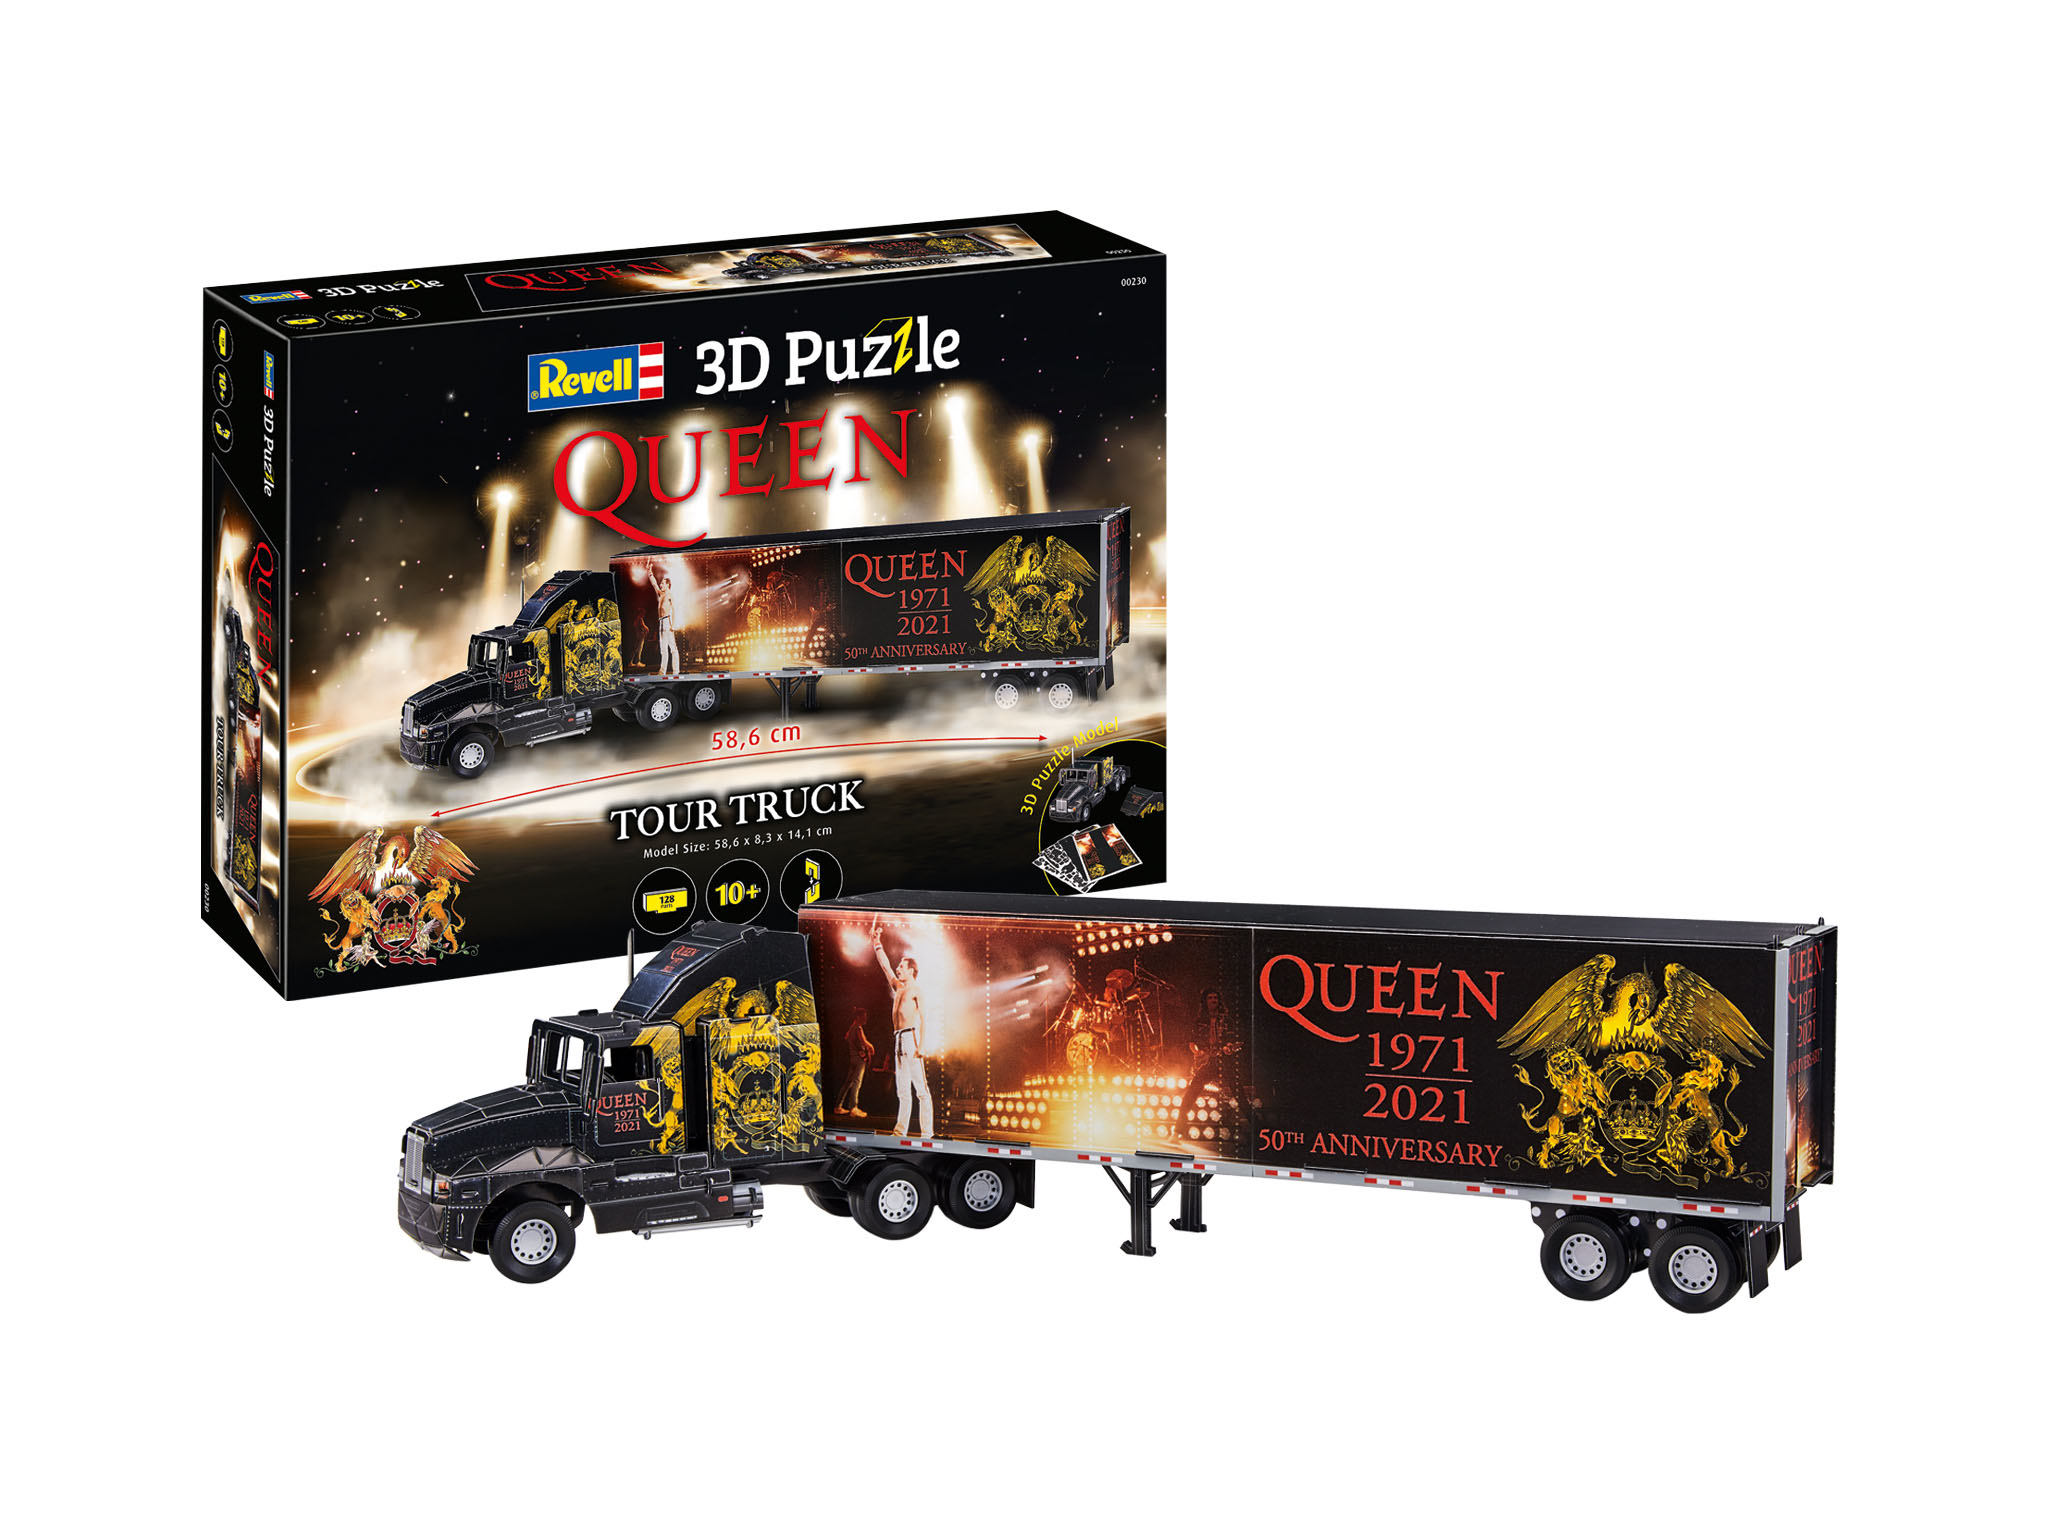 3D Puzzle REVELL QUEEN Tour Truck - 50th Anniversary